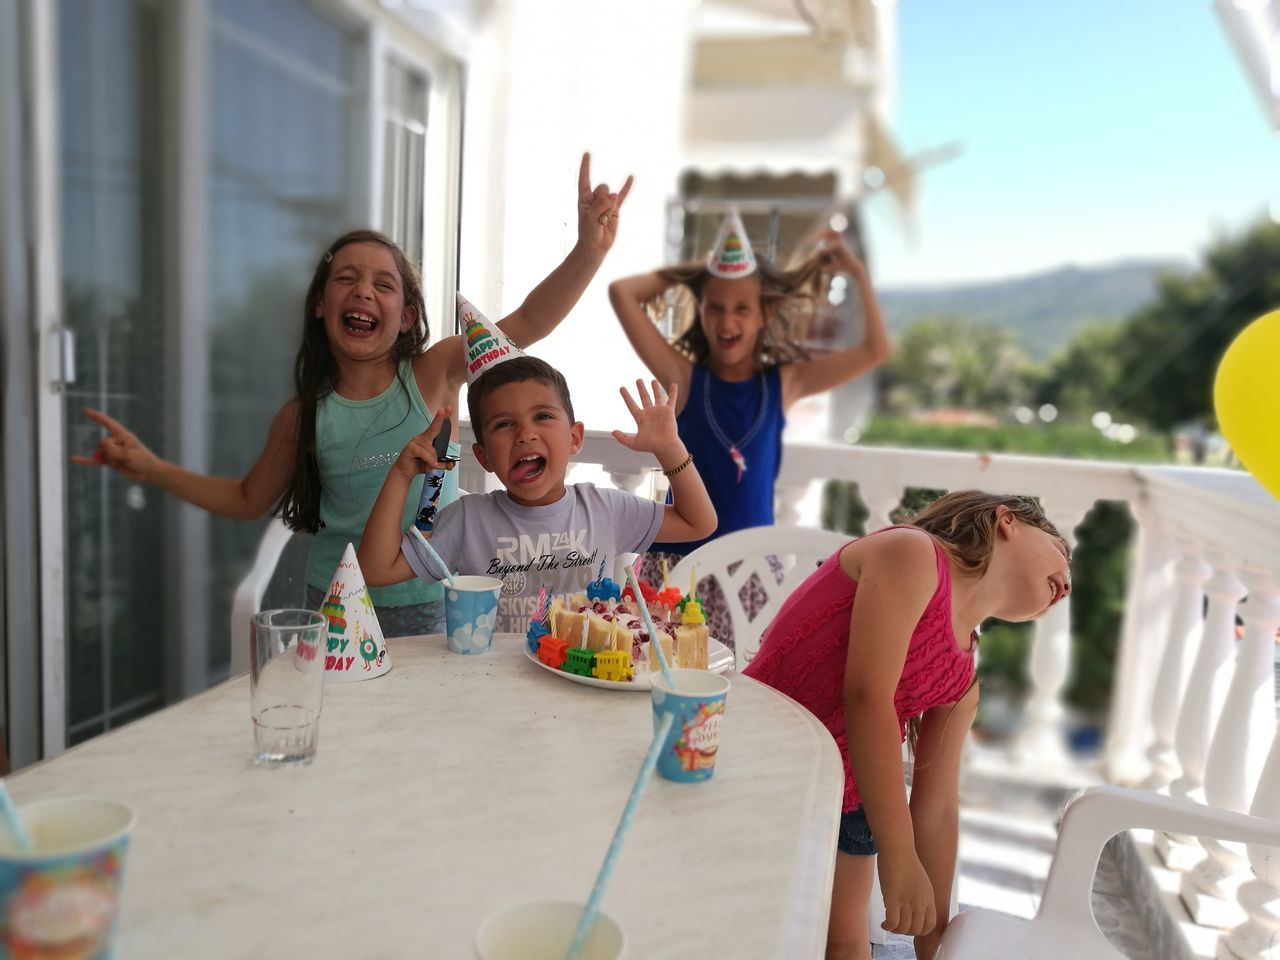 childhood, girls, real people, smiling, happiness, arms raised, mother, daughter, togetherness, enjoyment, father, looking at camera, lifestyles, casual clothing, love, celebration, fun, day, portrait, family, standing, cheerful, boys, leisure activity, bonding, child, outdoors, men, women, full length, architecture, young adult